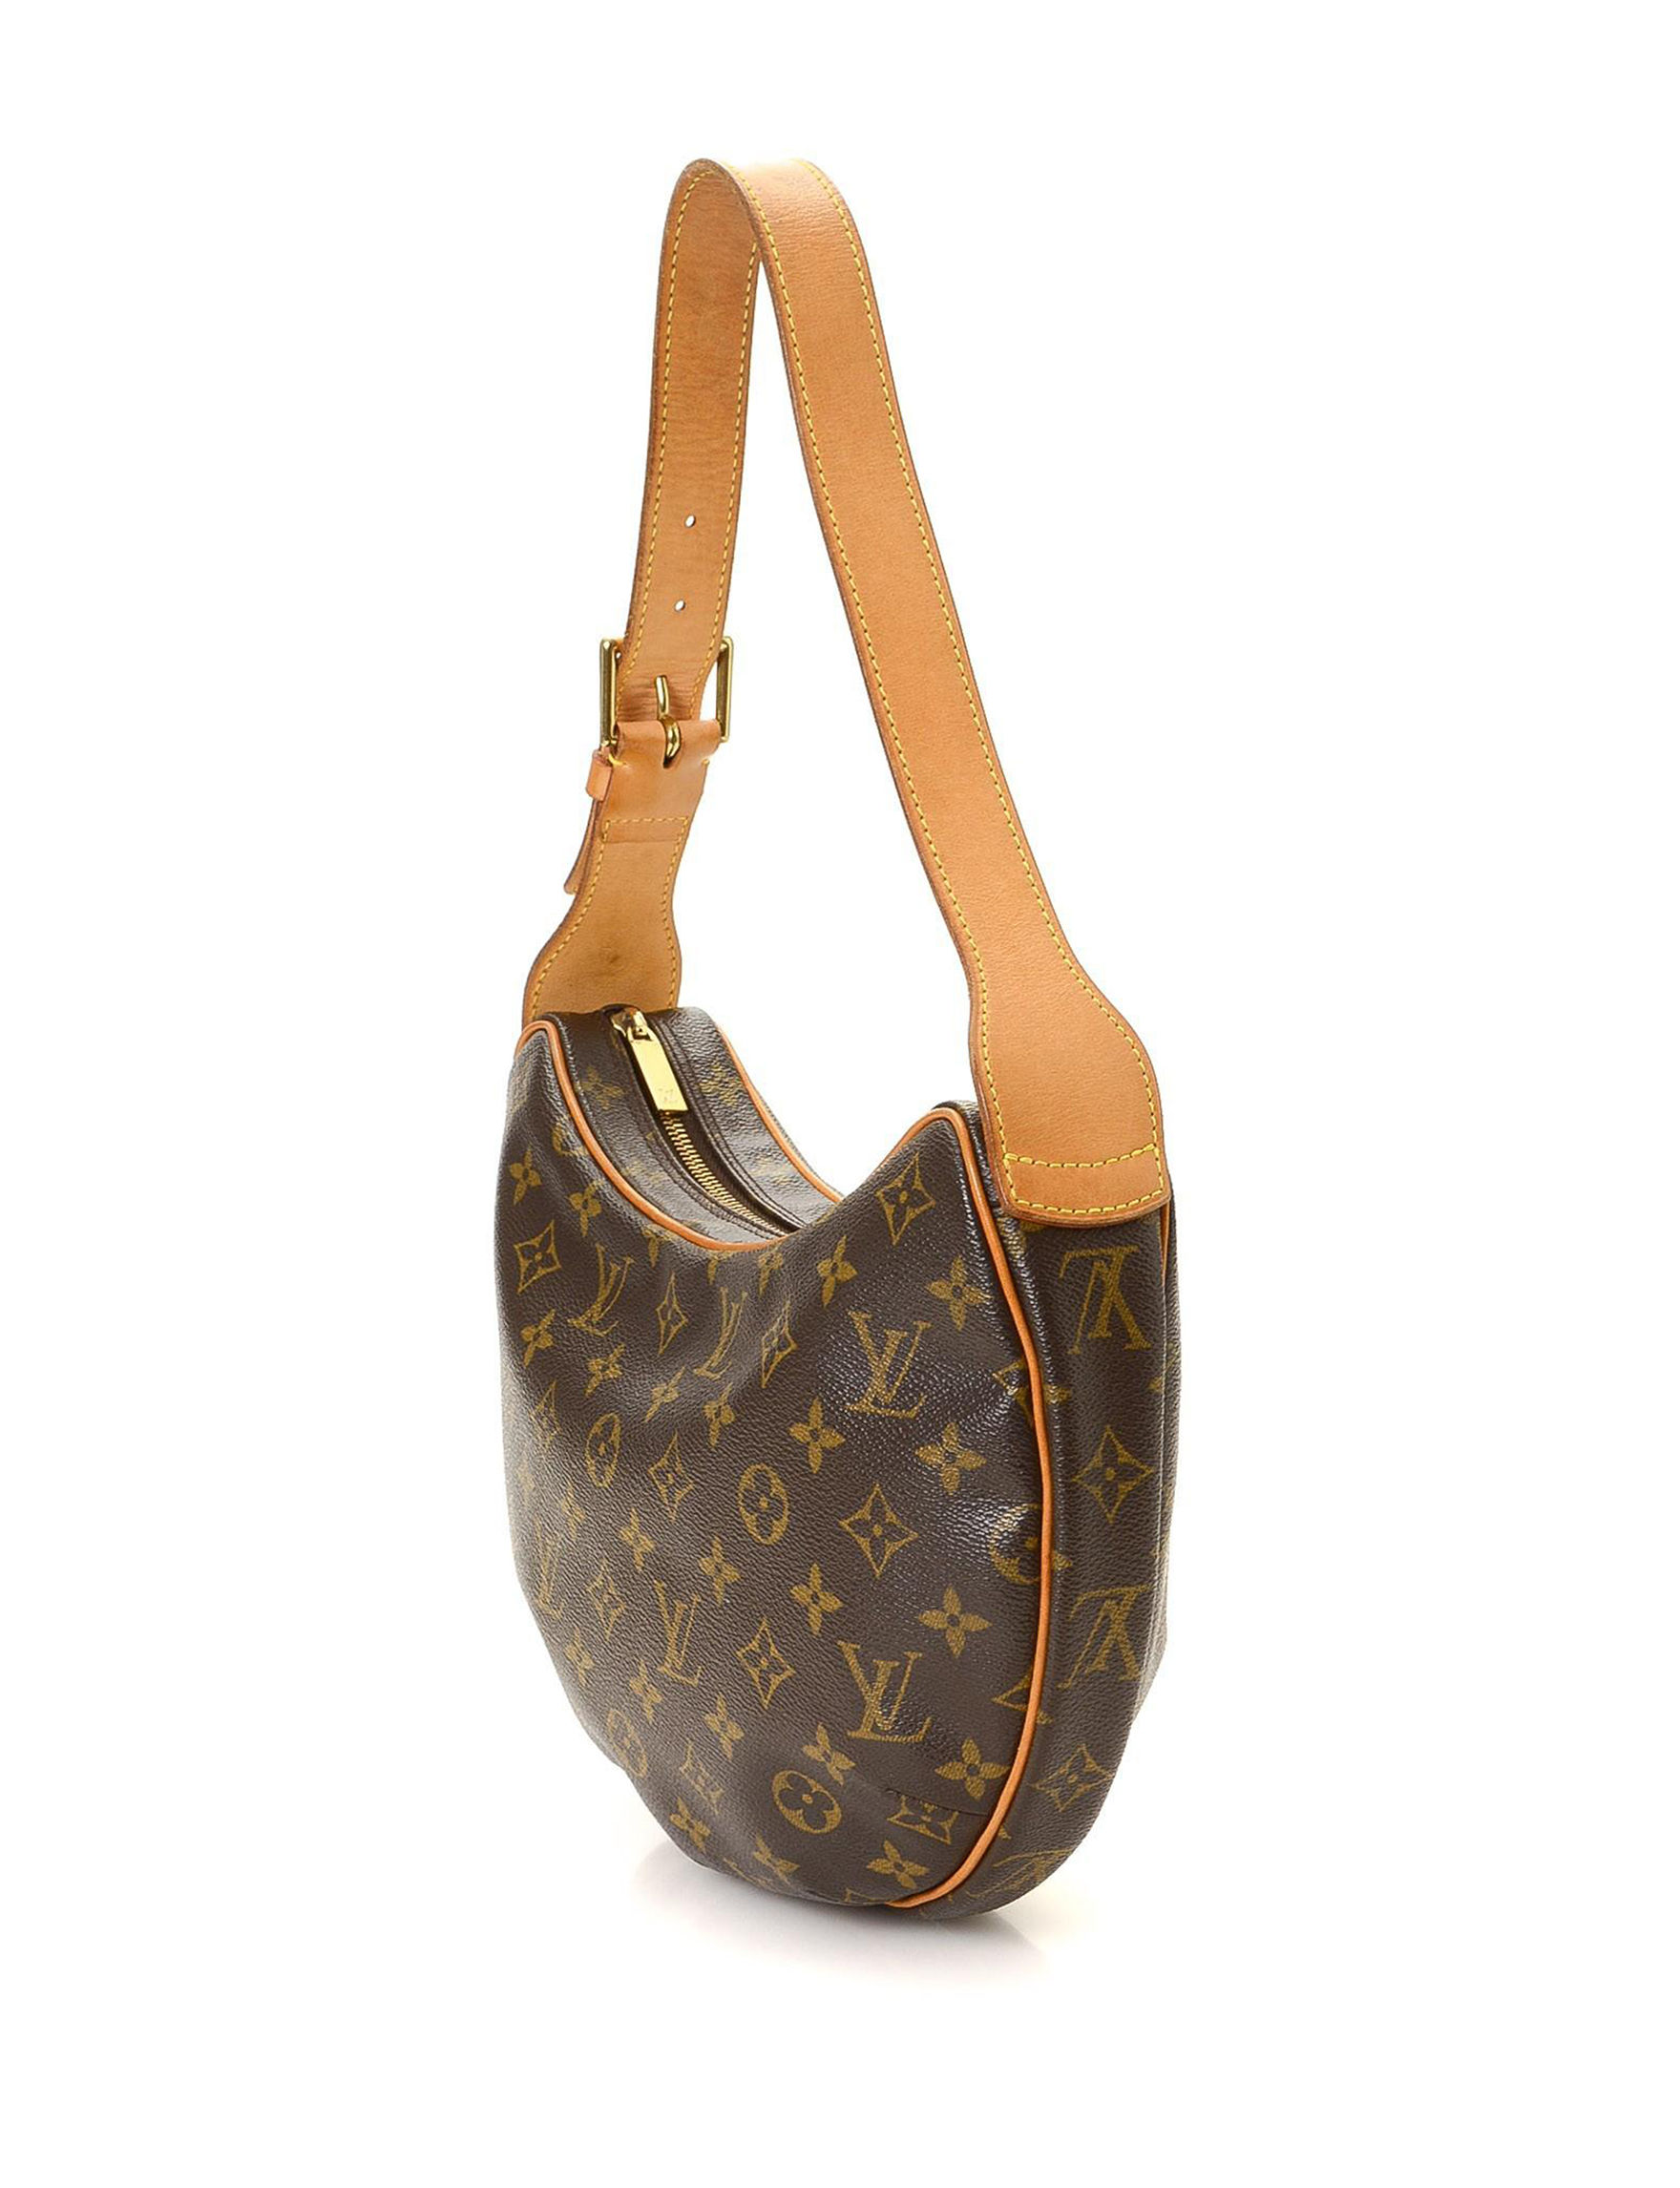 28617a7ea3f9 Luxury Pre-Owned Louis Vuitton Croissant MM - FINAL SALE